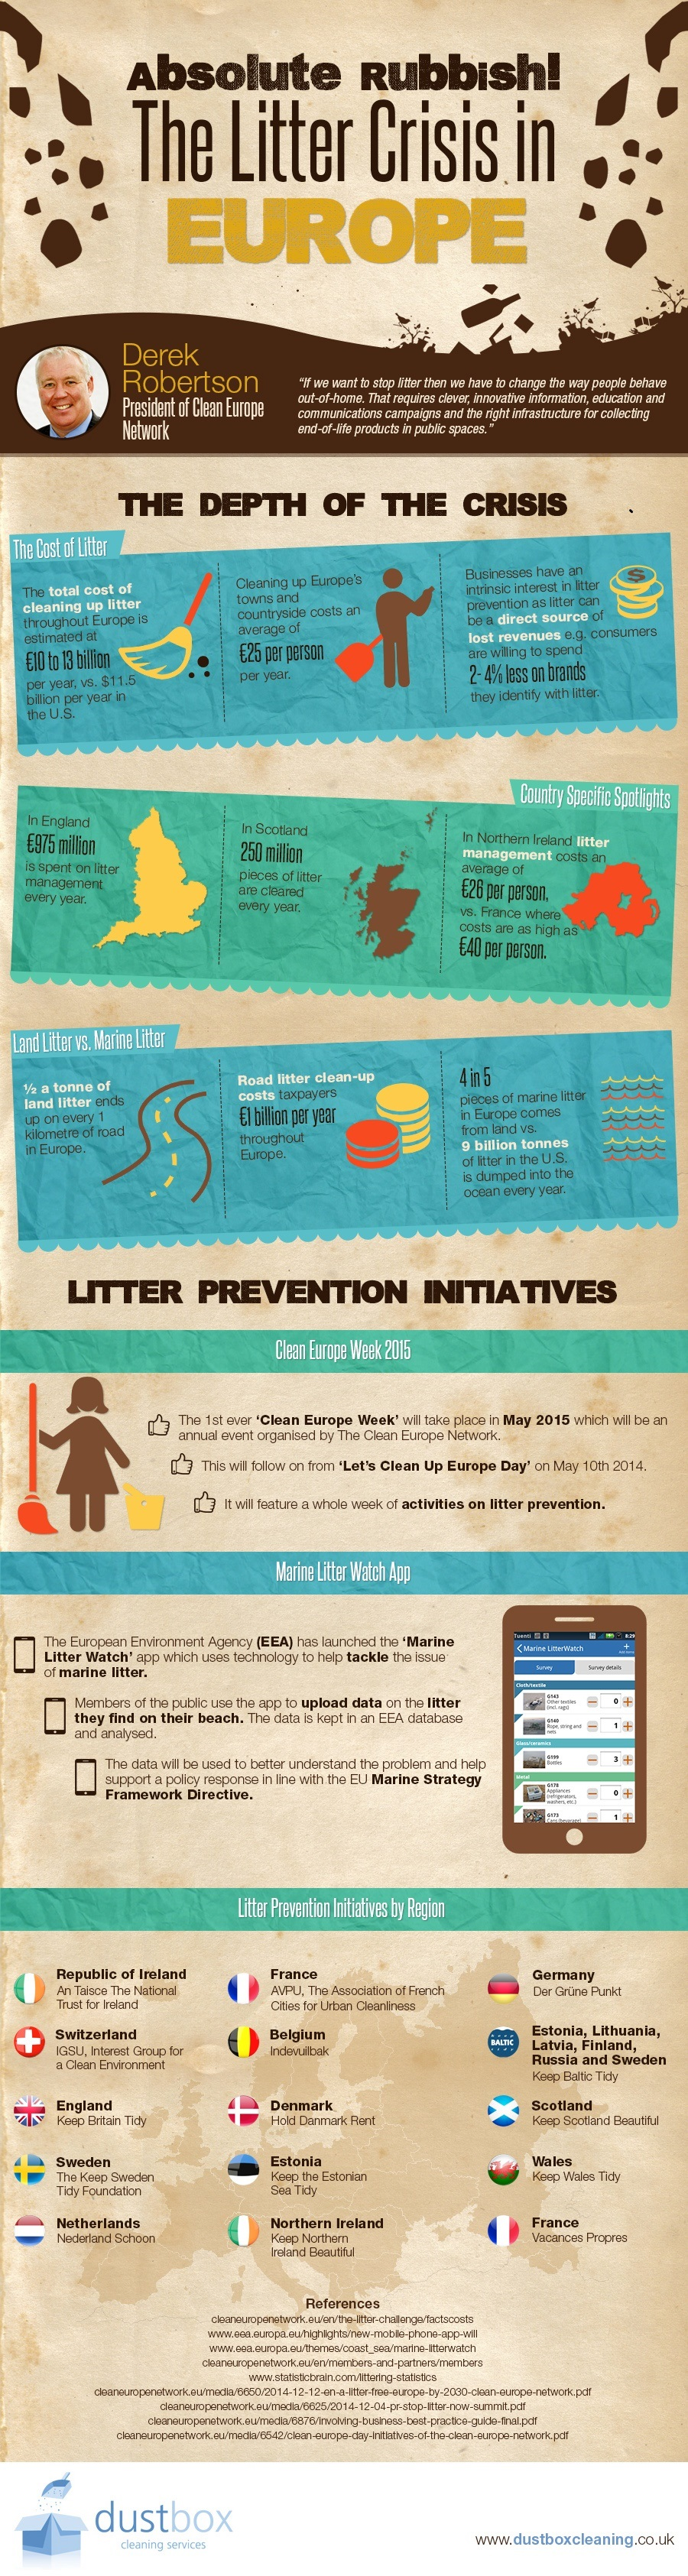 The Litter Crisis in Europe